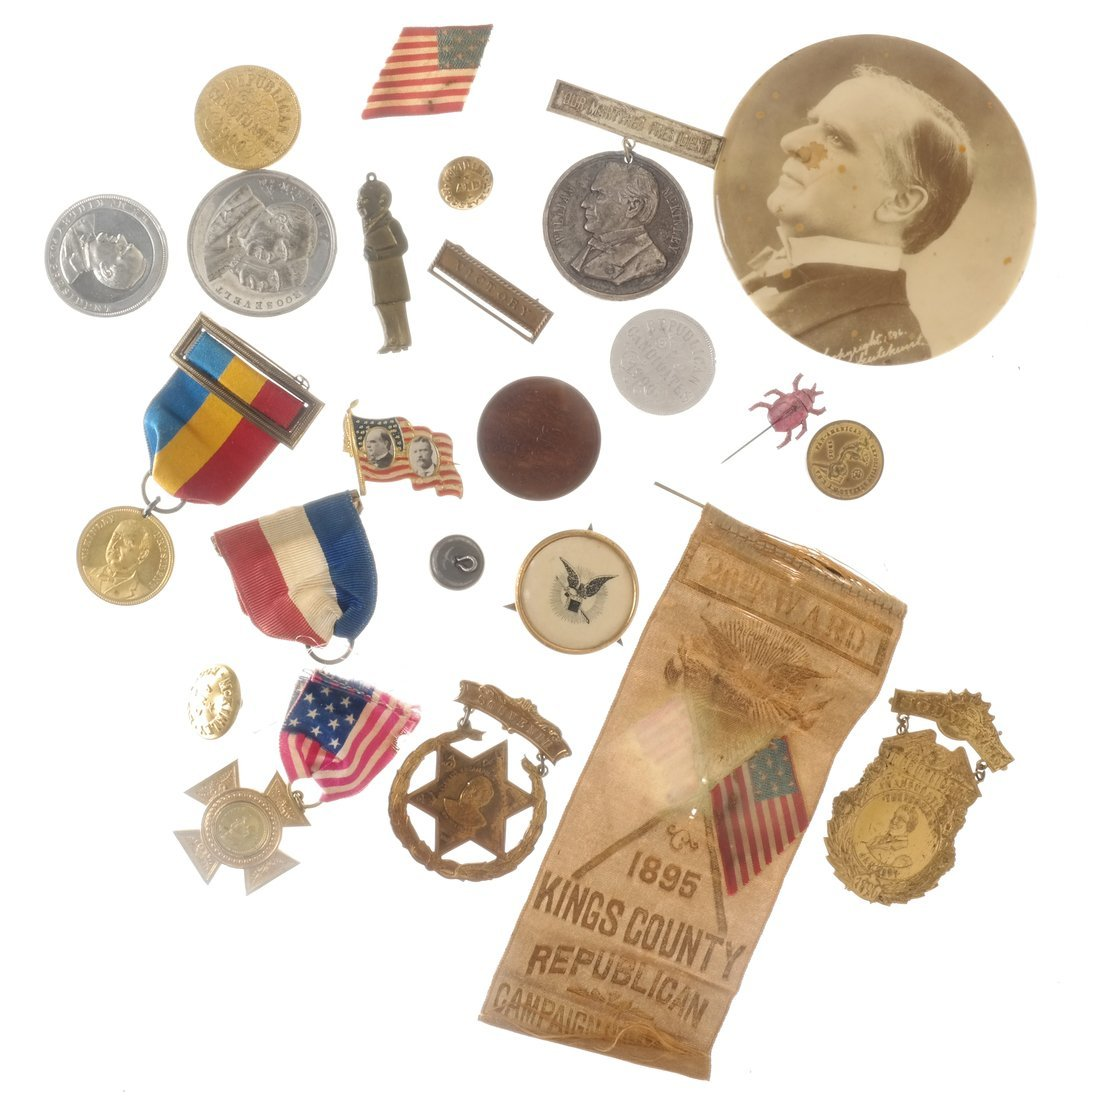 William McKinley - Campaign and Memorial Items